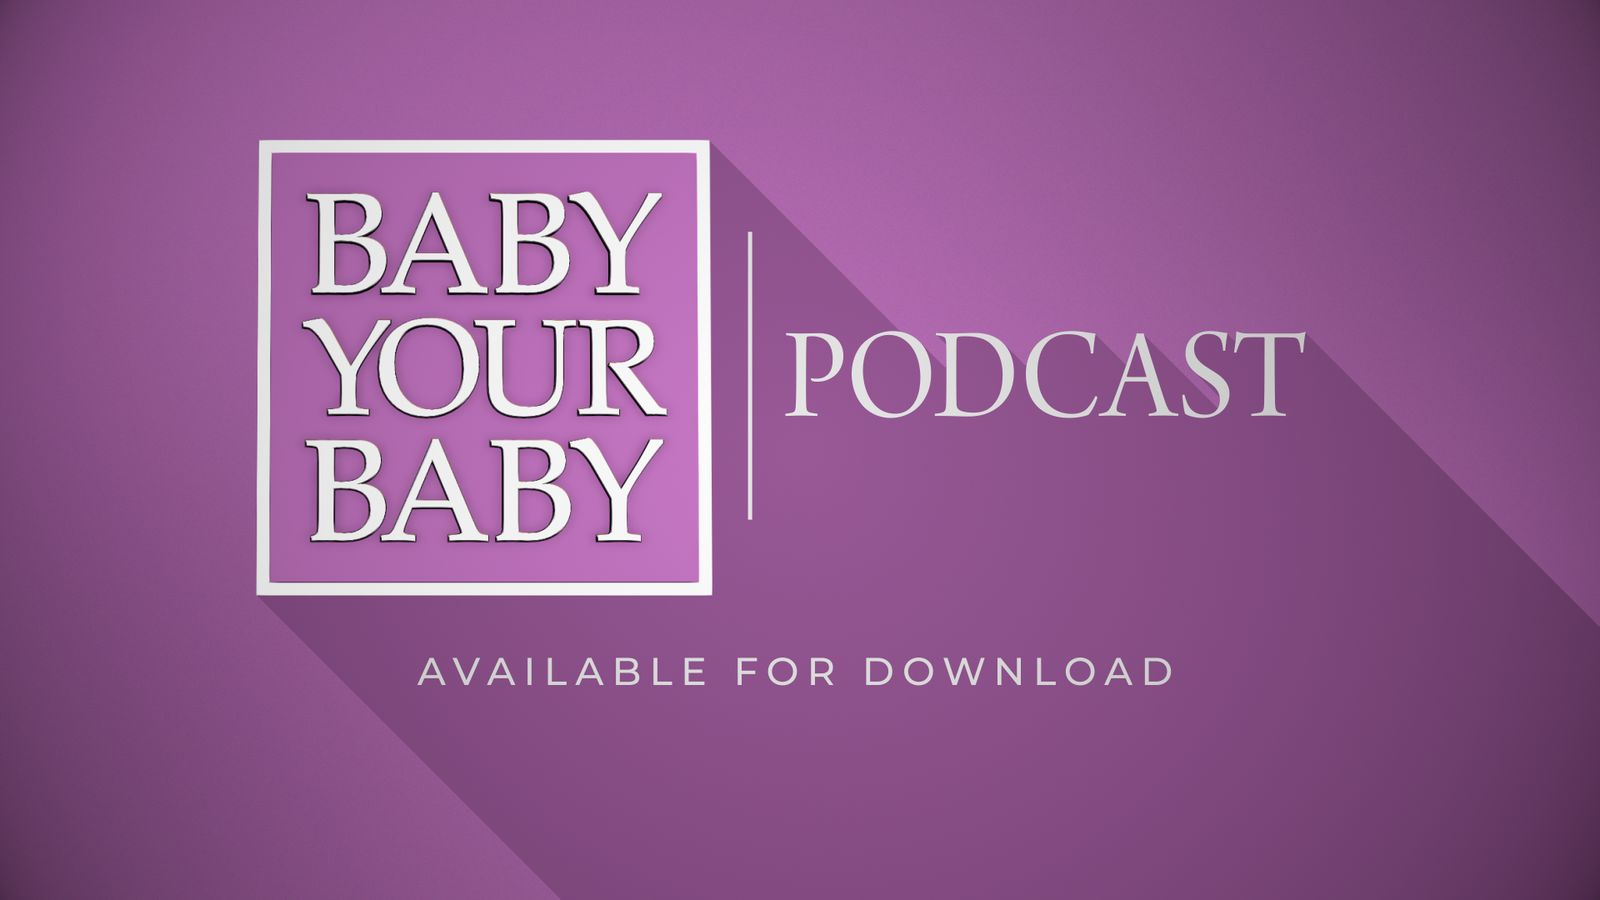 Baby Your Baby Podcast